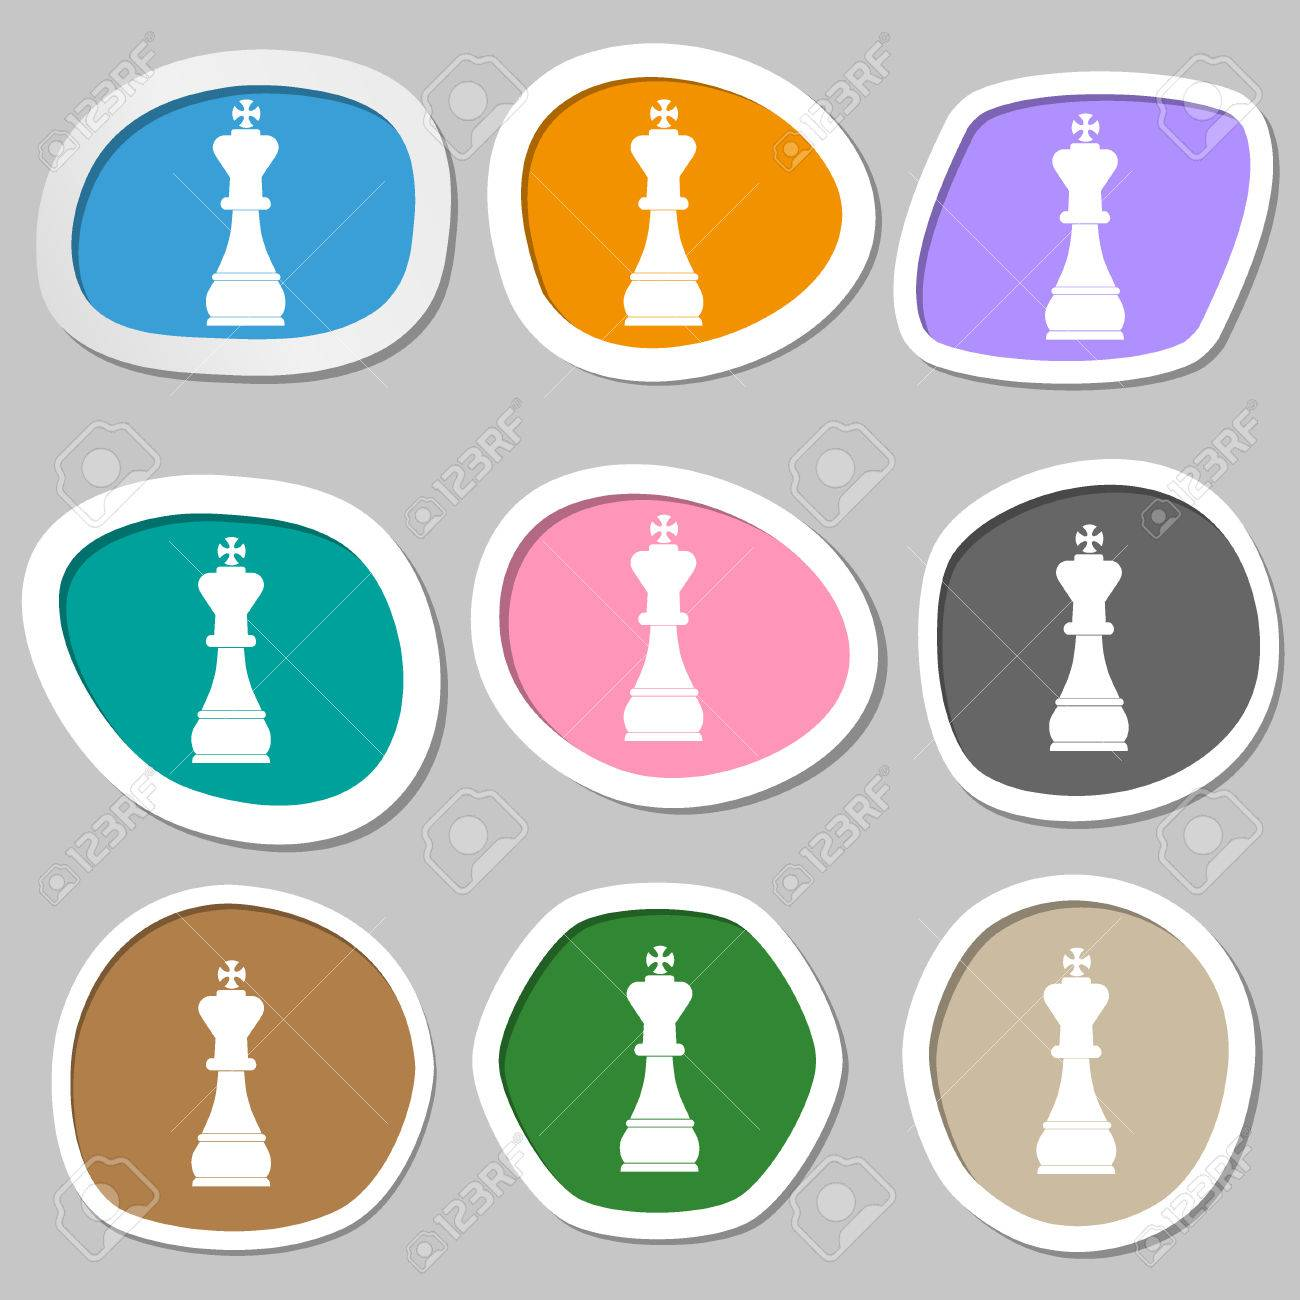 Chess King Symbols Multicolored Paper Stickers Illustration Stock